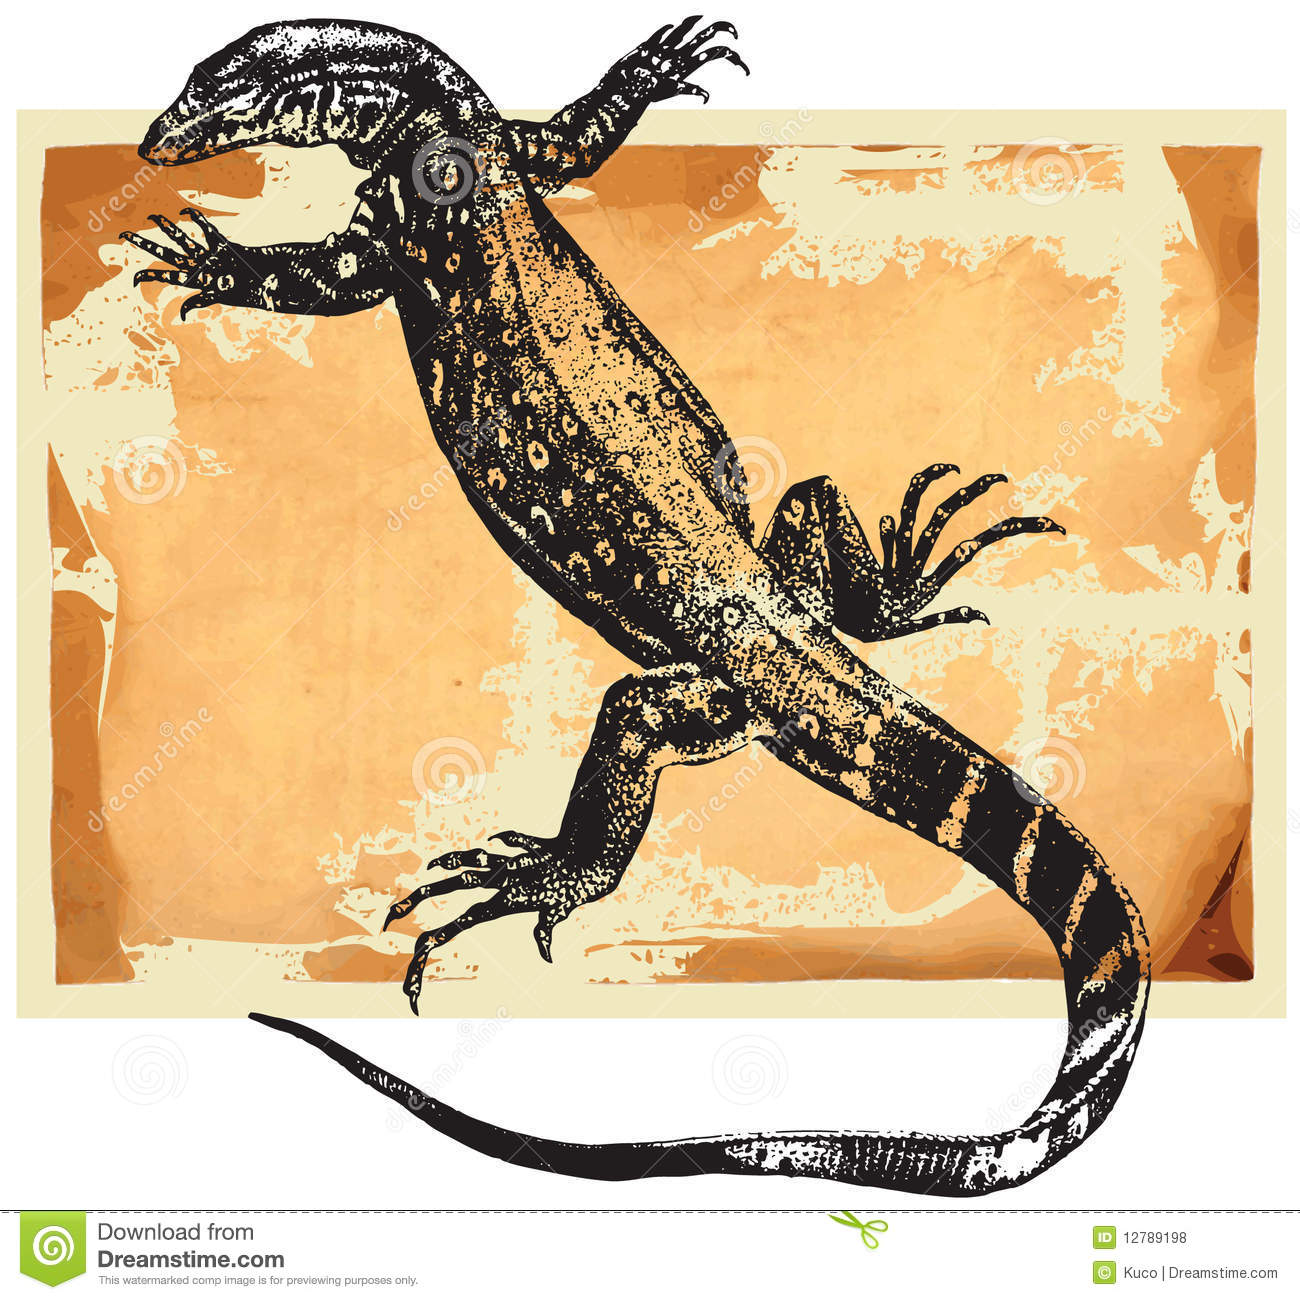 Monitor Lizard Stock Illustrations.